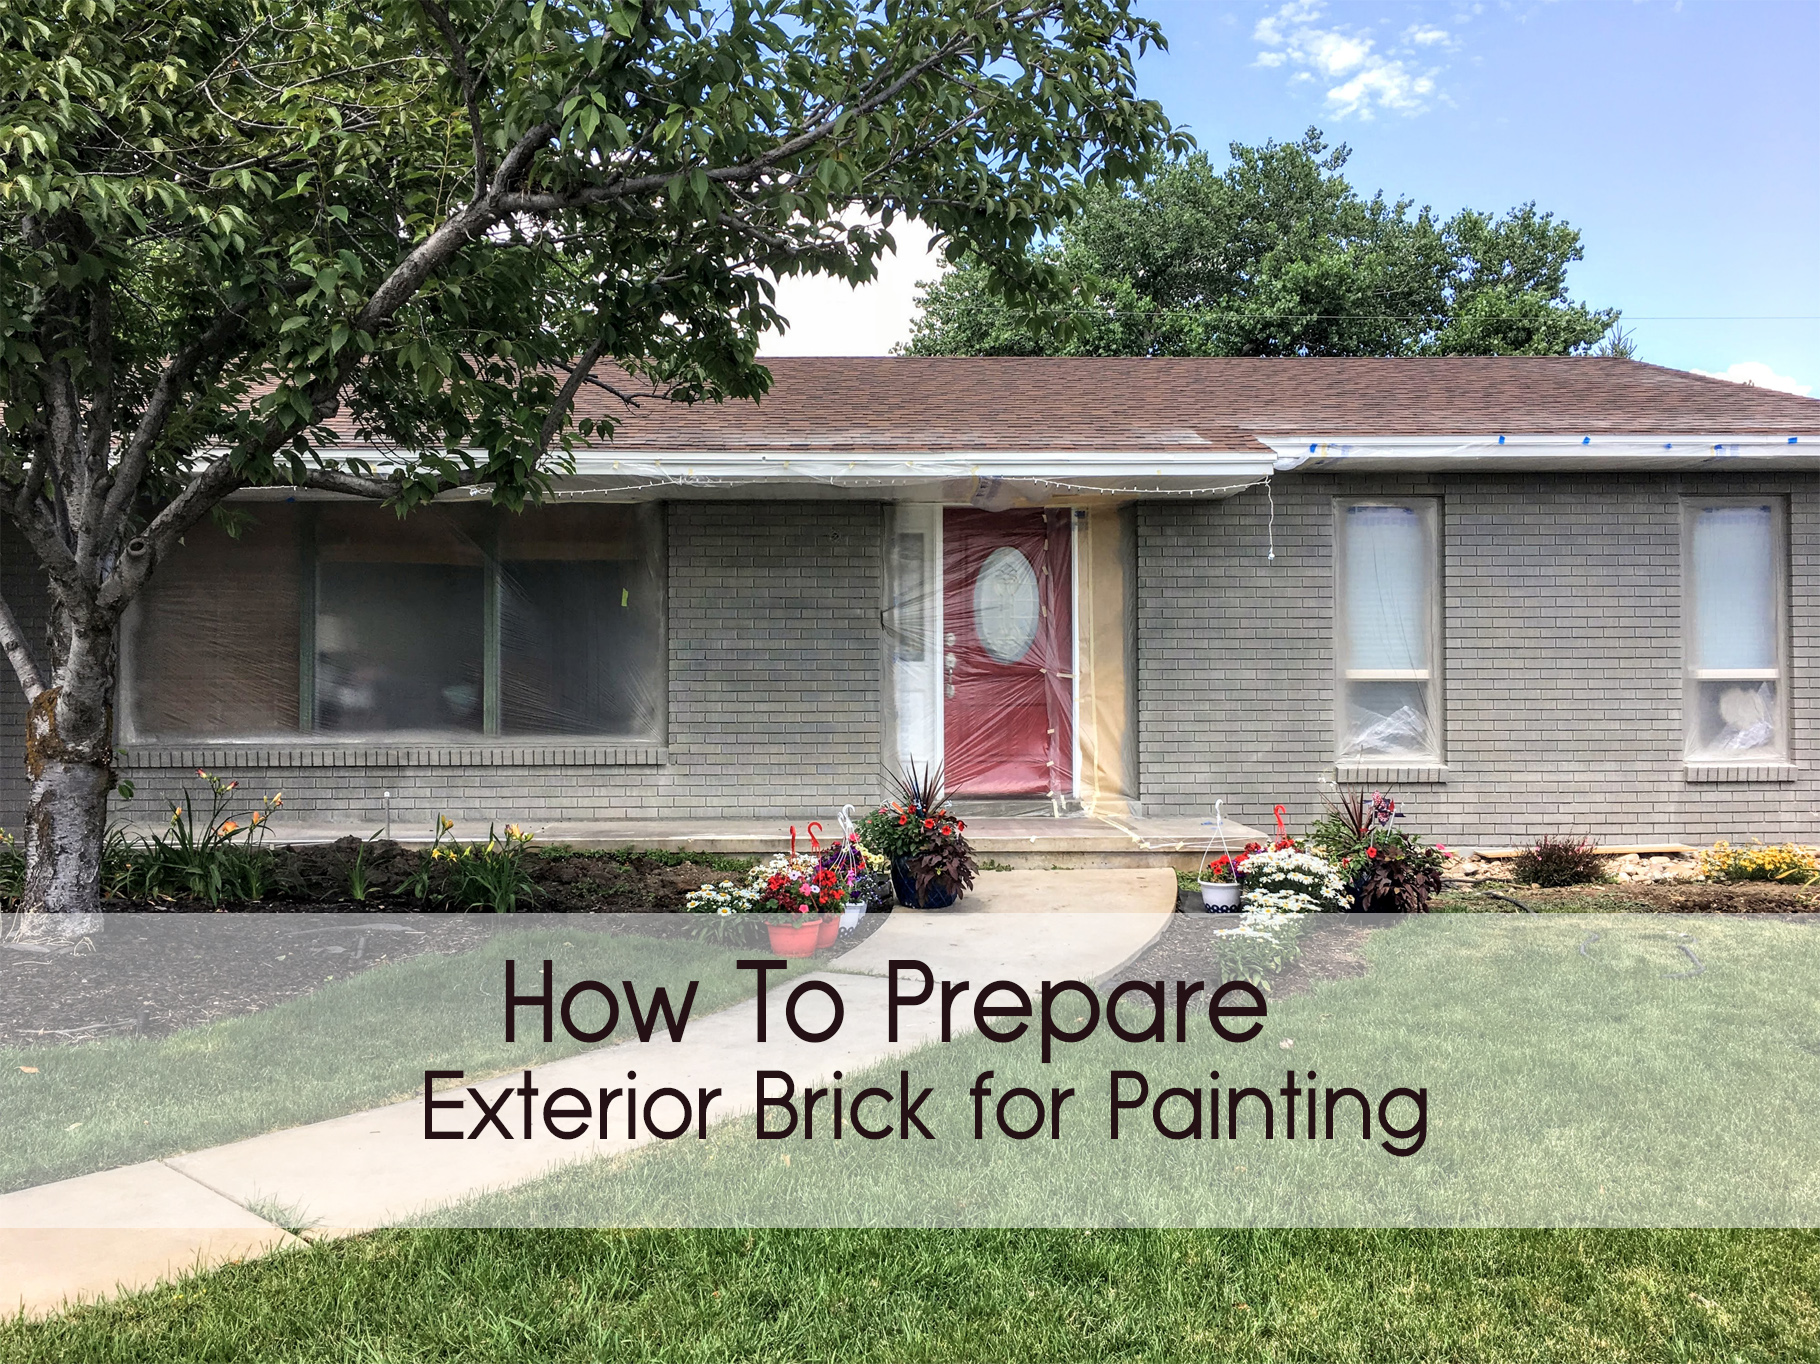 How to Prepare Exterior Brick for Painting 1